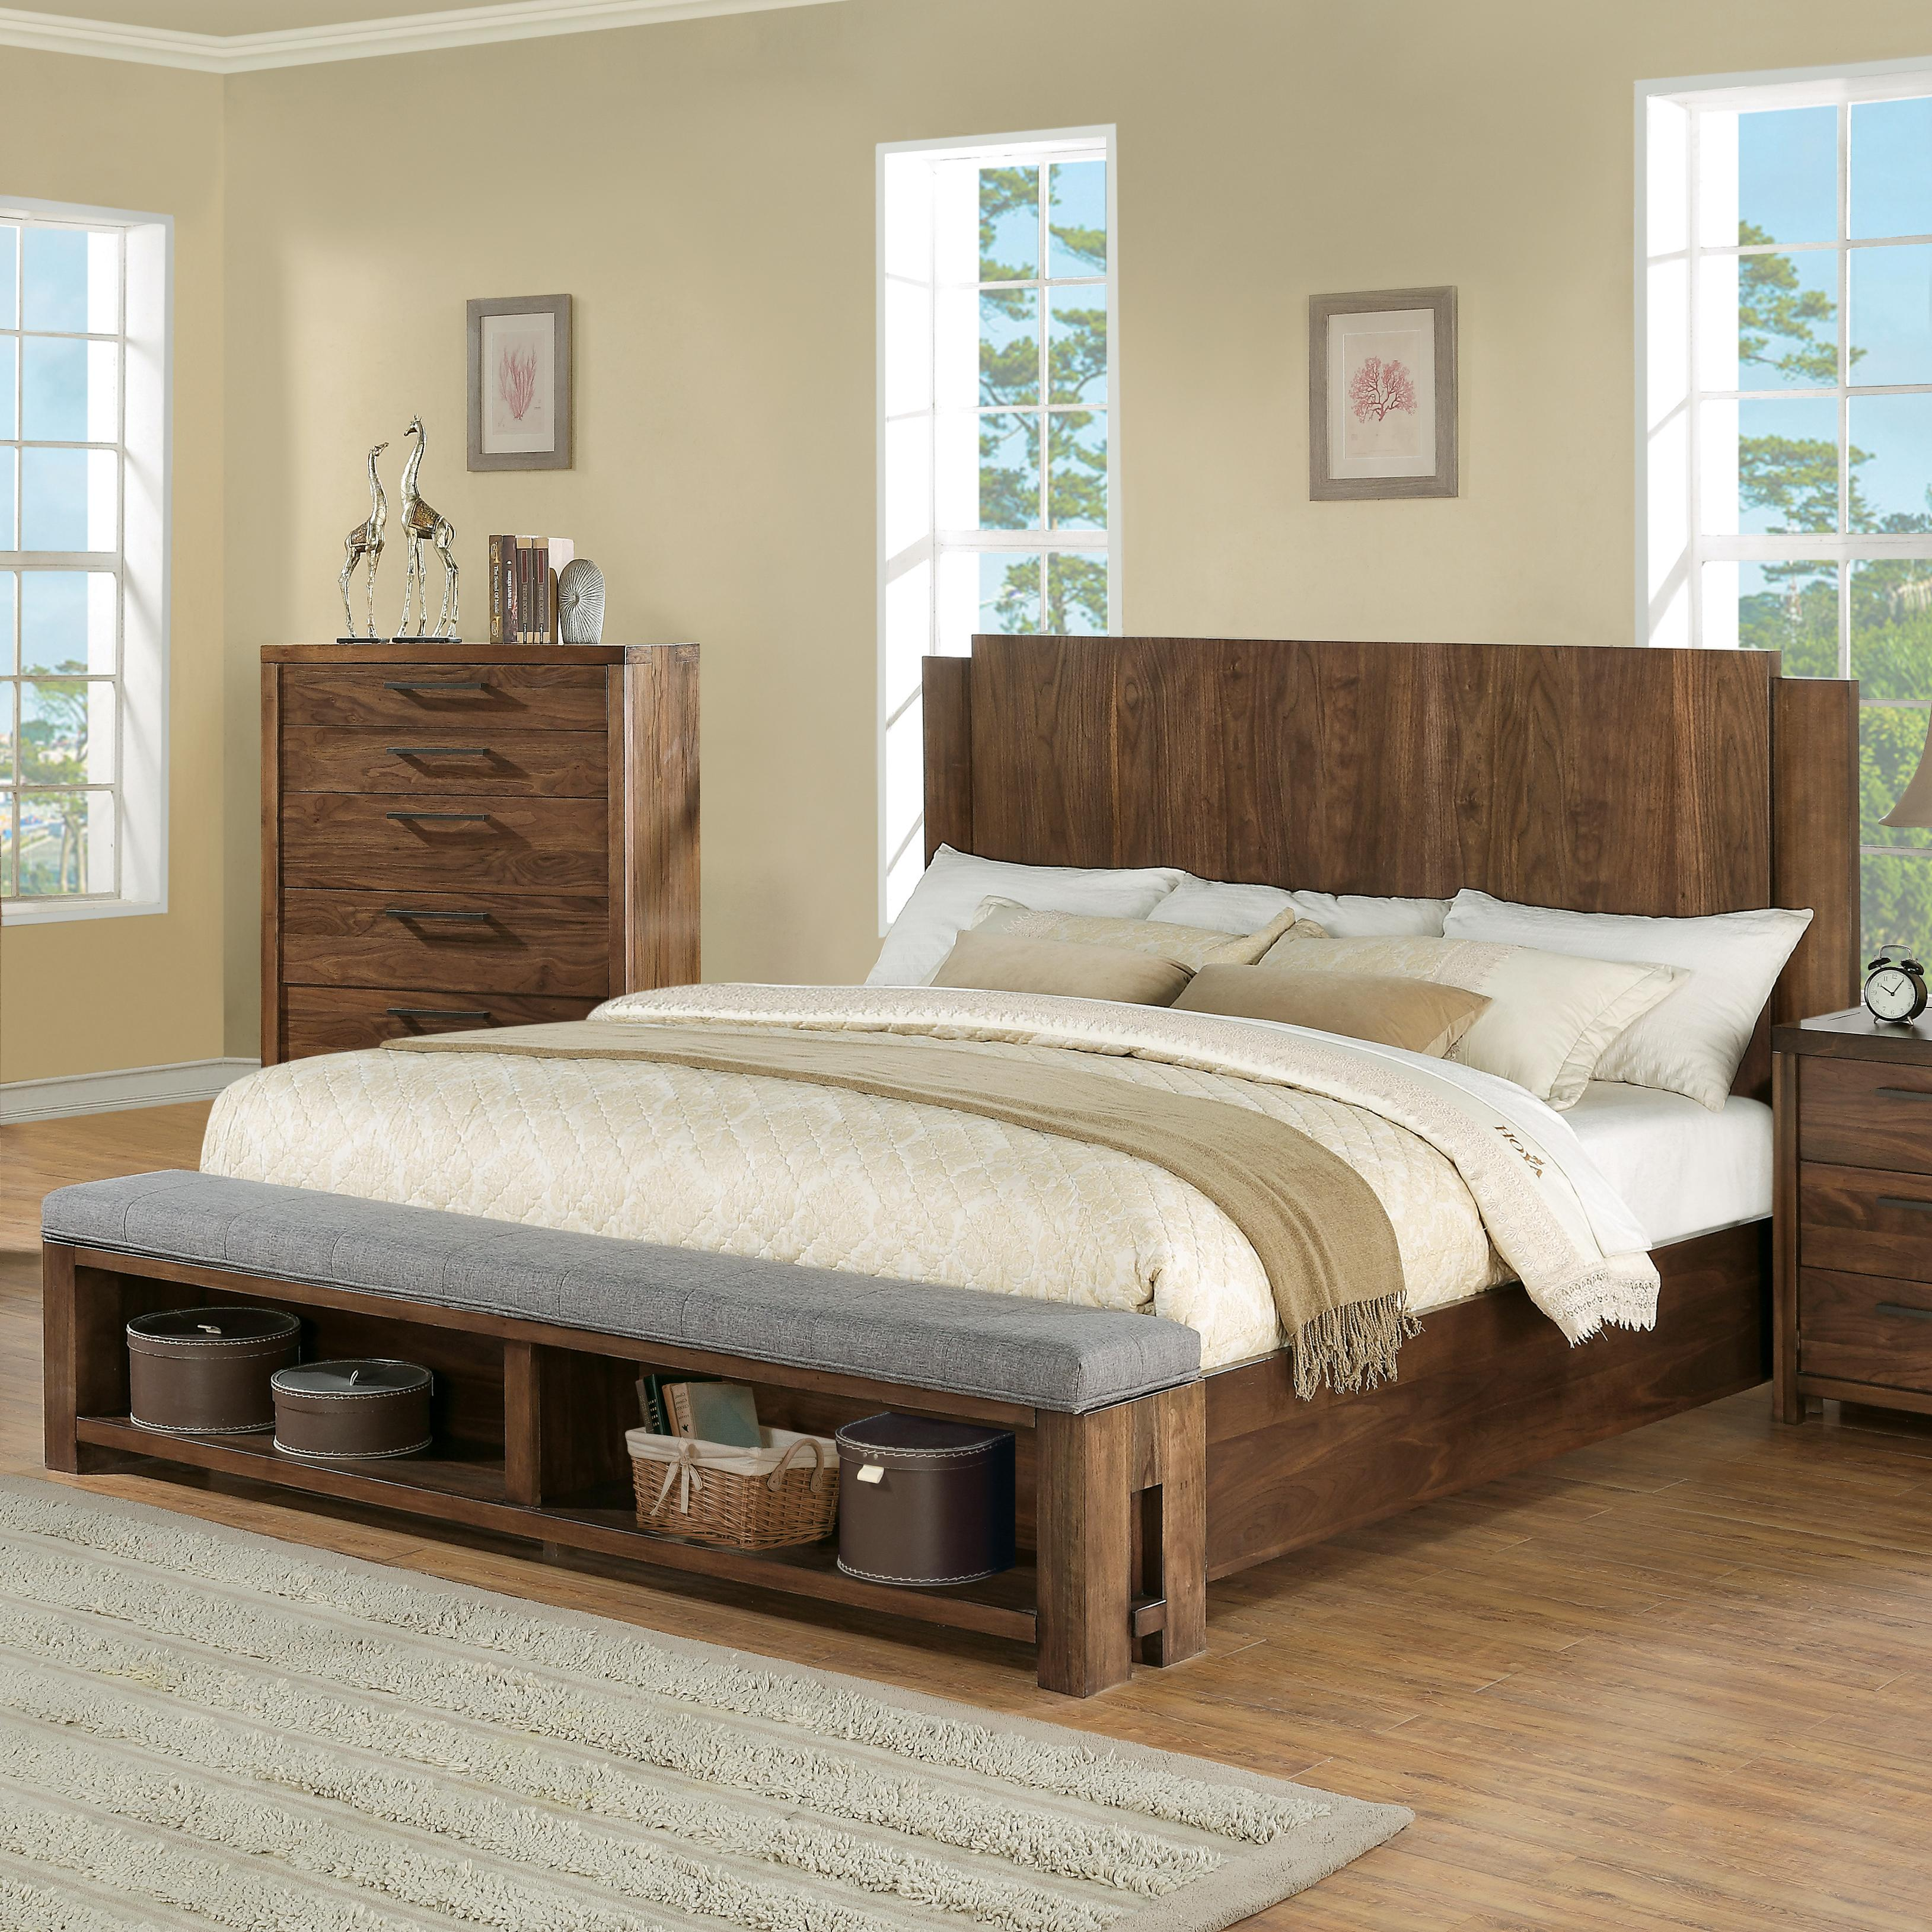 Bedroom Bench King Bed Queen Low Profile Panel Bed W Bench By Riverside